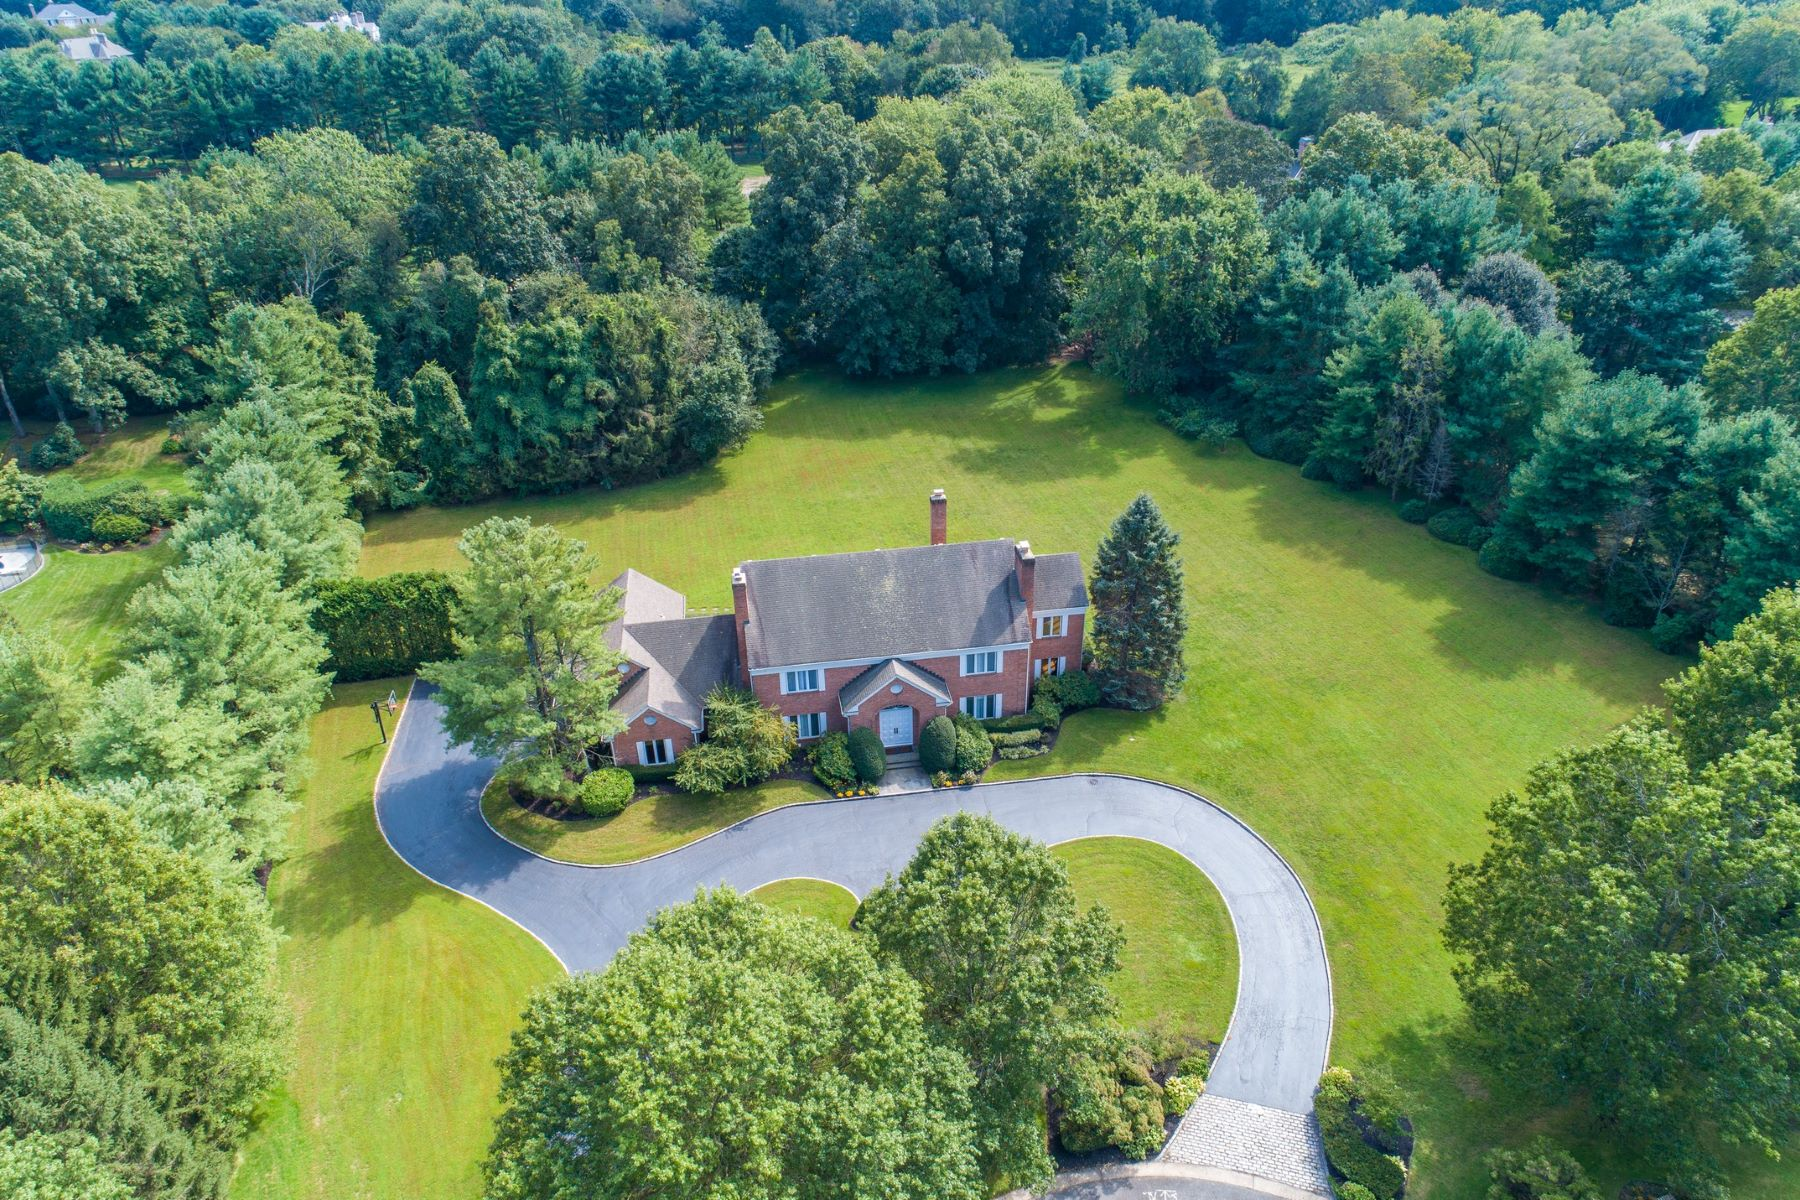 Single Family Homes for Sale at Old Brookville 10 High Meadow Ct Old Brookville, New York 11545 United States